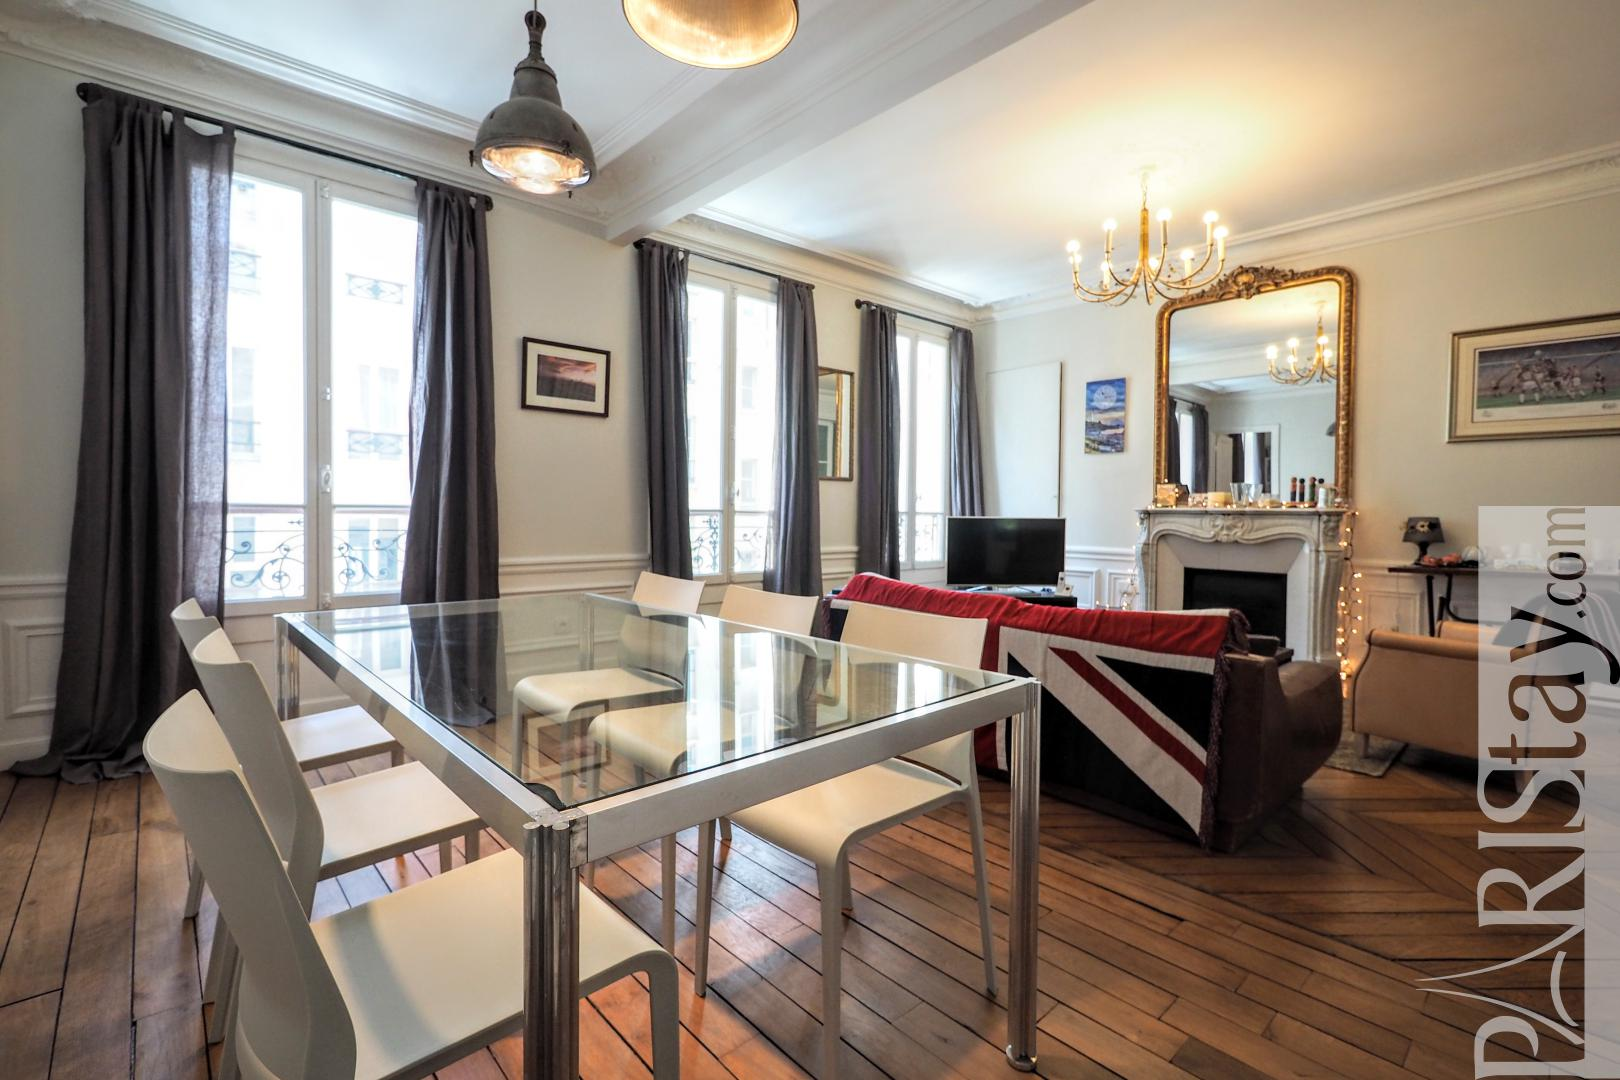 Apartment for rent in Paris France furnished 2 bedroom 75006